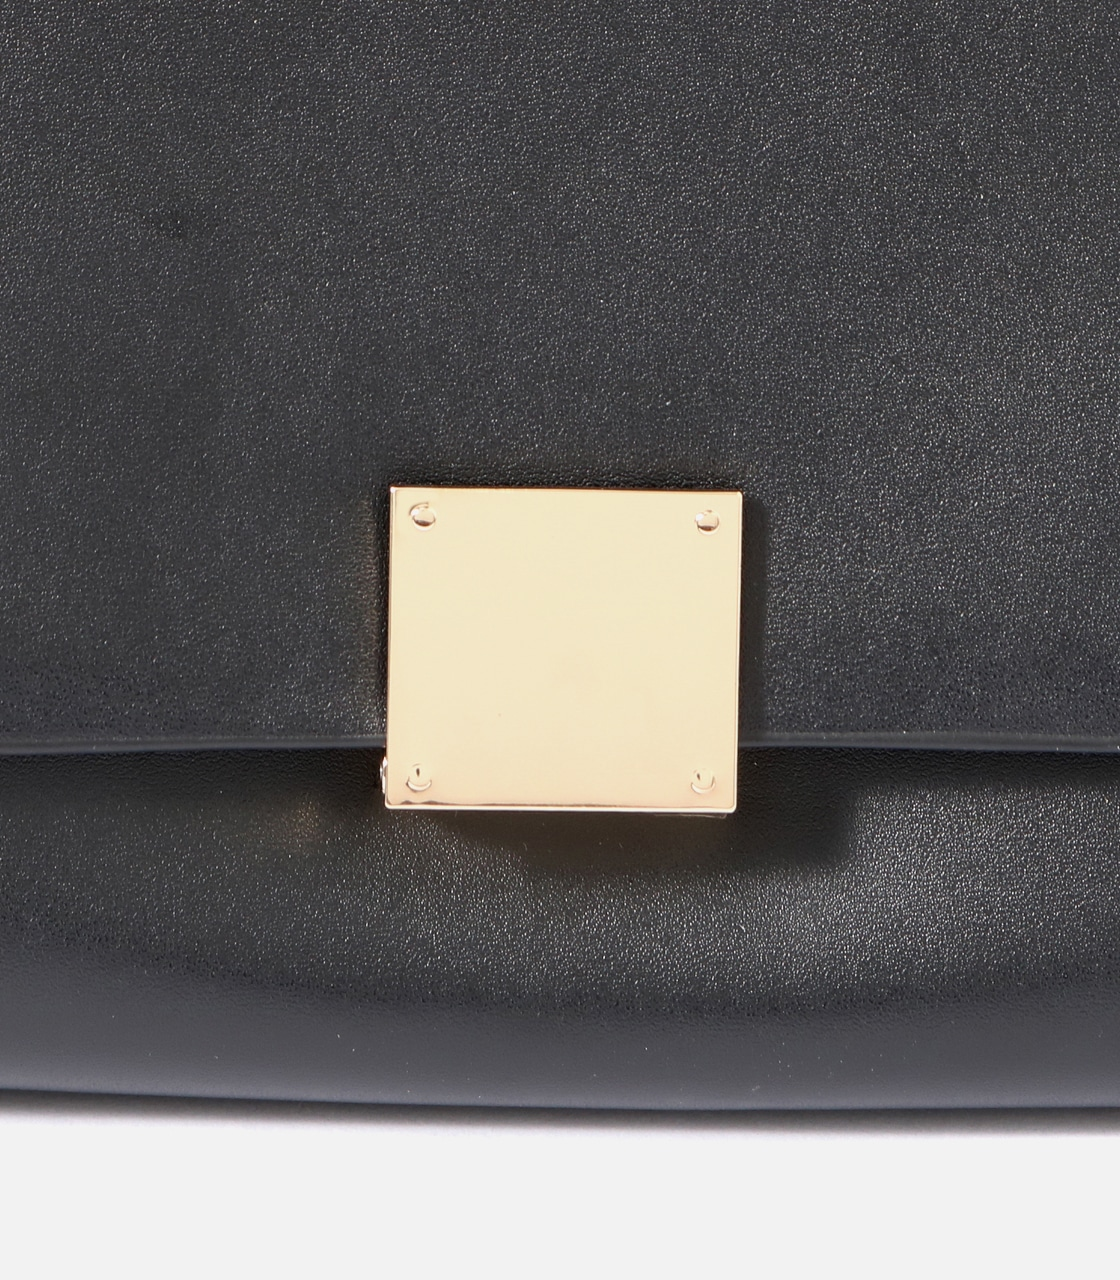 【AZUL BY MOUSSY】SQUARE METAL BAG 詳細画像 BLK 5